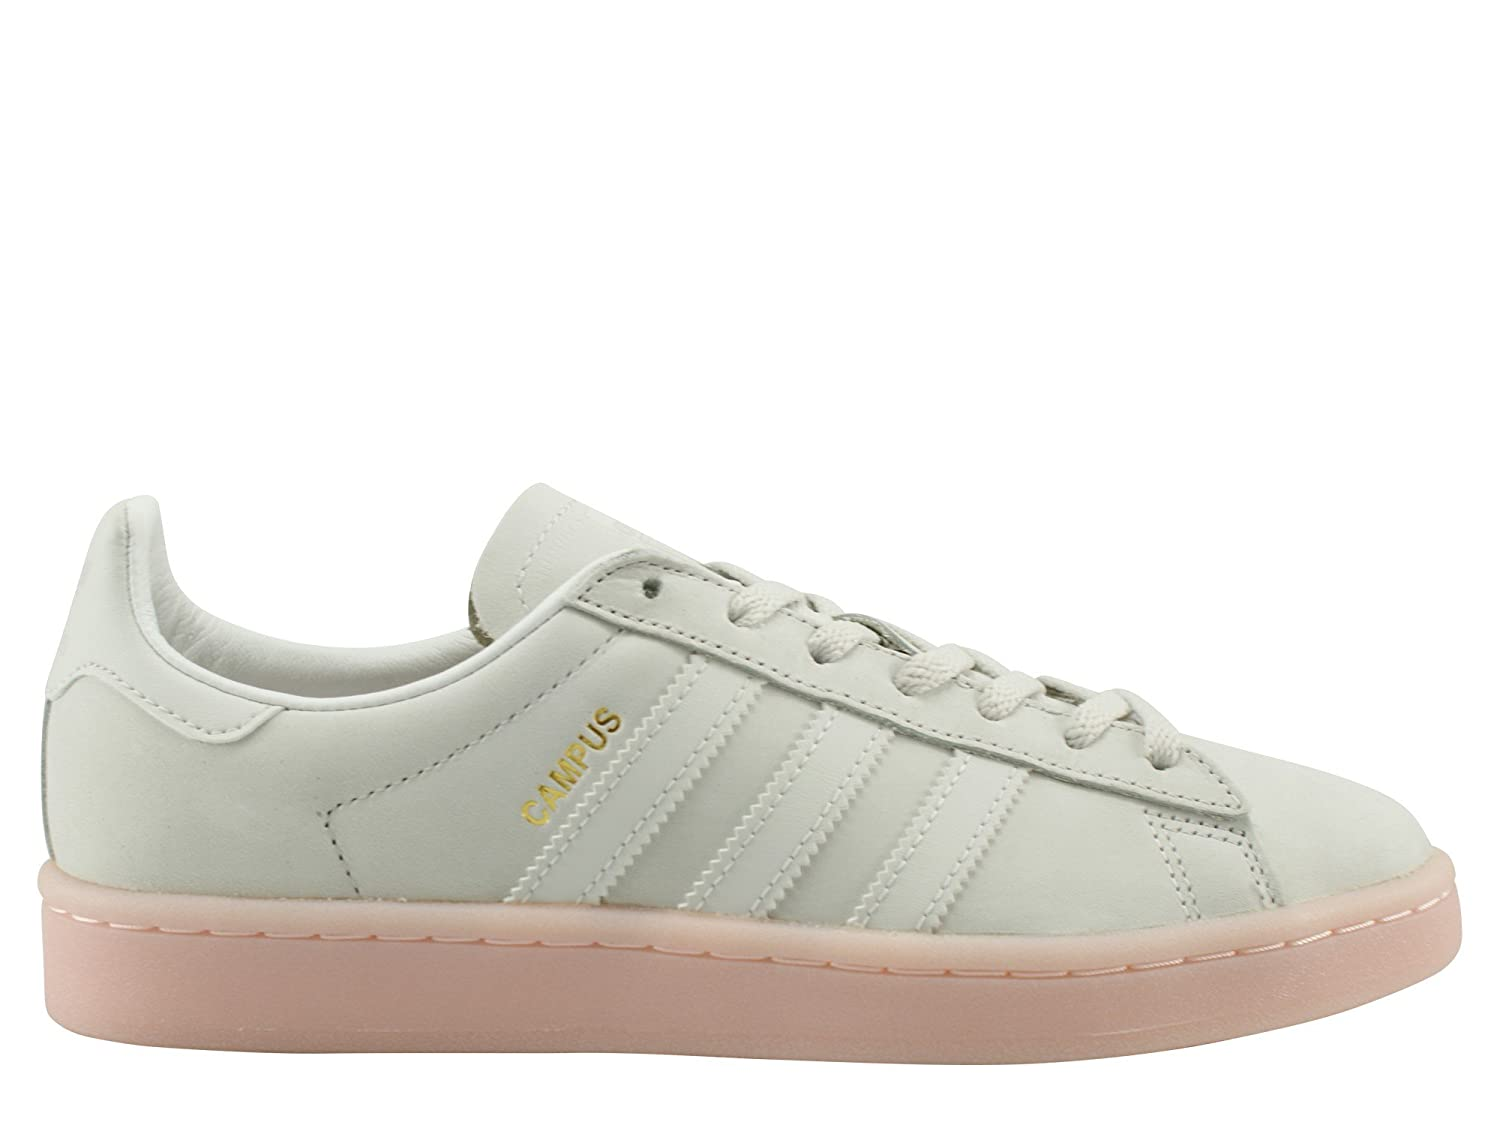 adidas Originals Women's Campus Trainers Crystal Icey US8.5 Grey